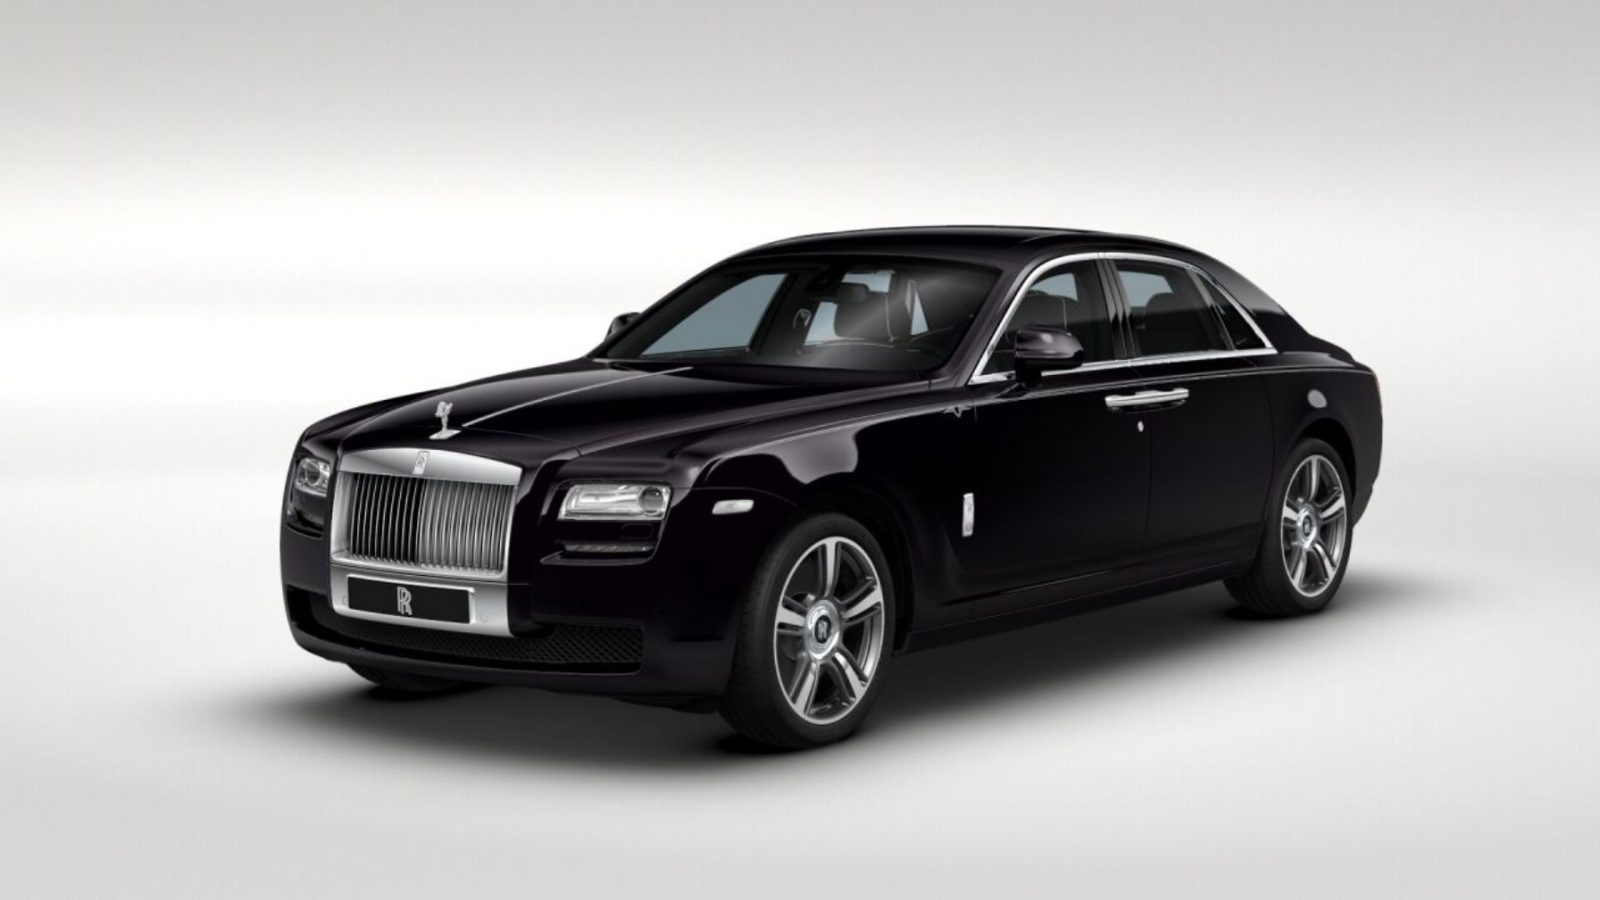 2014 rolls royce ghost v spec adds power dark glamour to swb and lwb 4 doors car revs. Black Bedroom Furniture Sets. Home Design Ideas